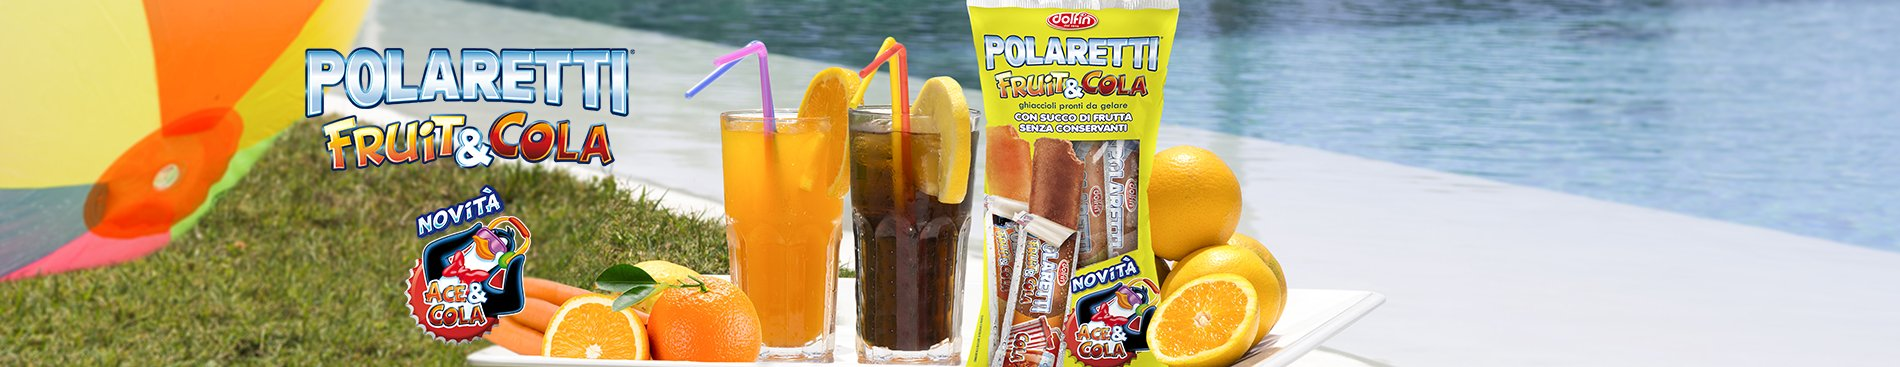 Polaretti Fruit and Cola